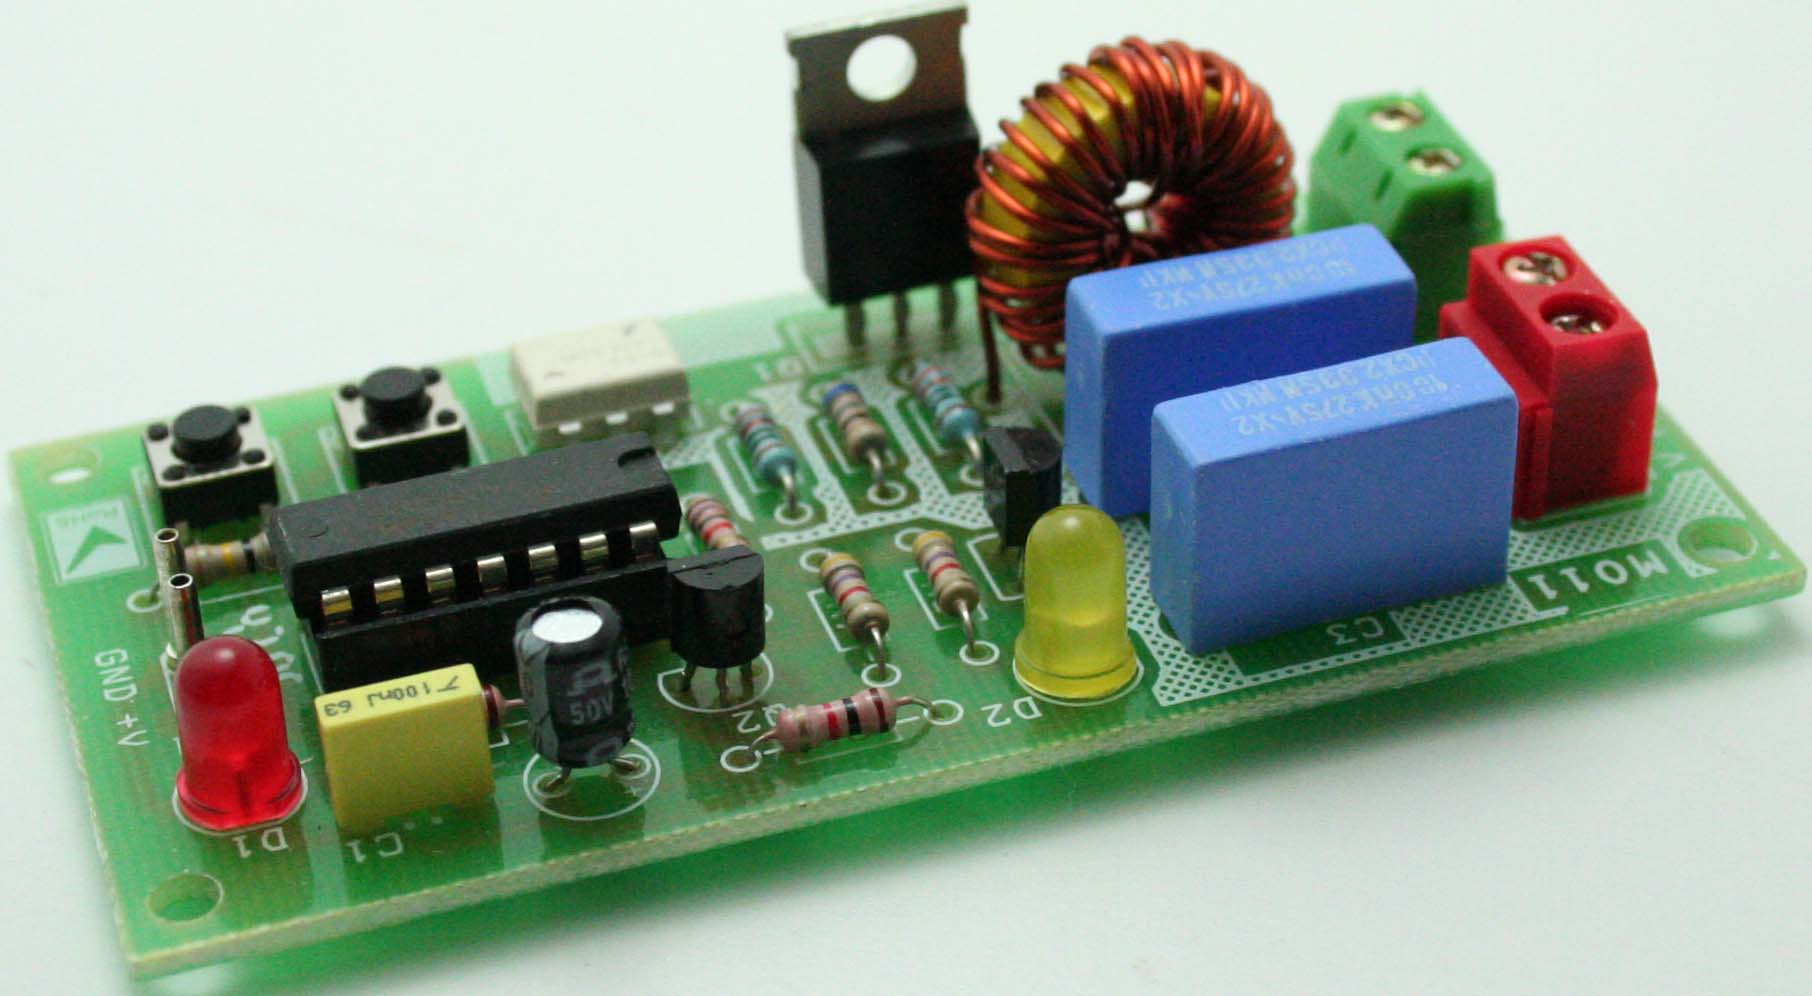 hight resolution of solid state ac relay with digital togle switch for inductive and resisitive loads 1